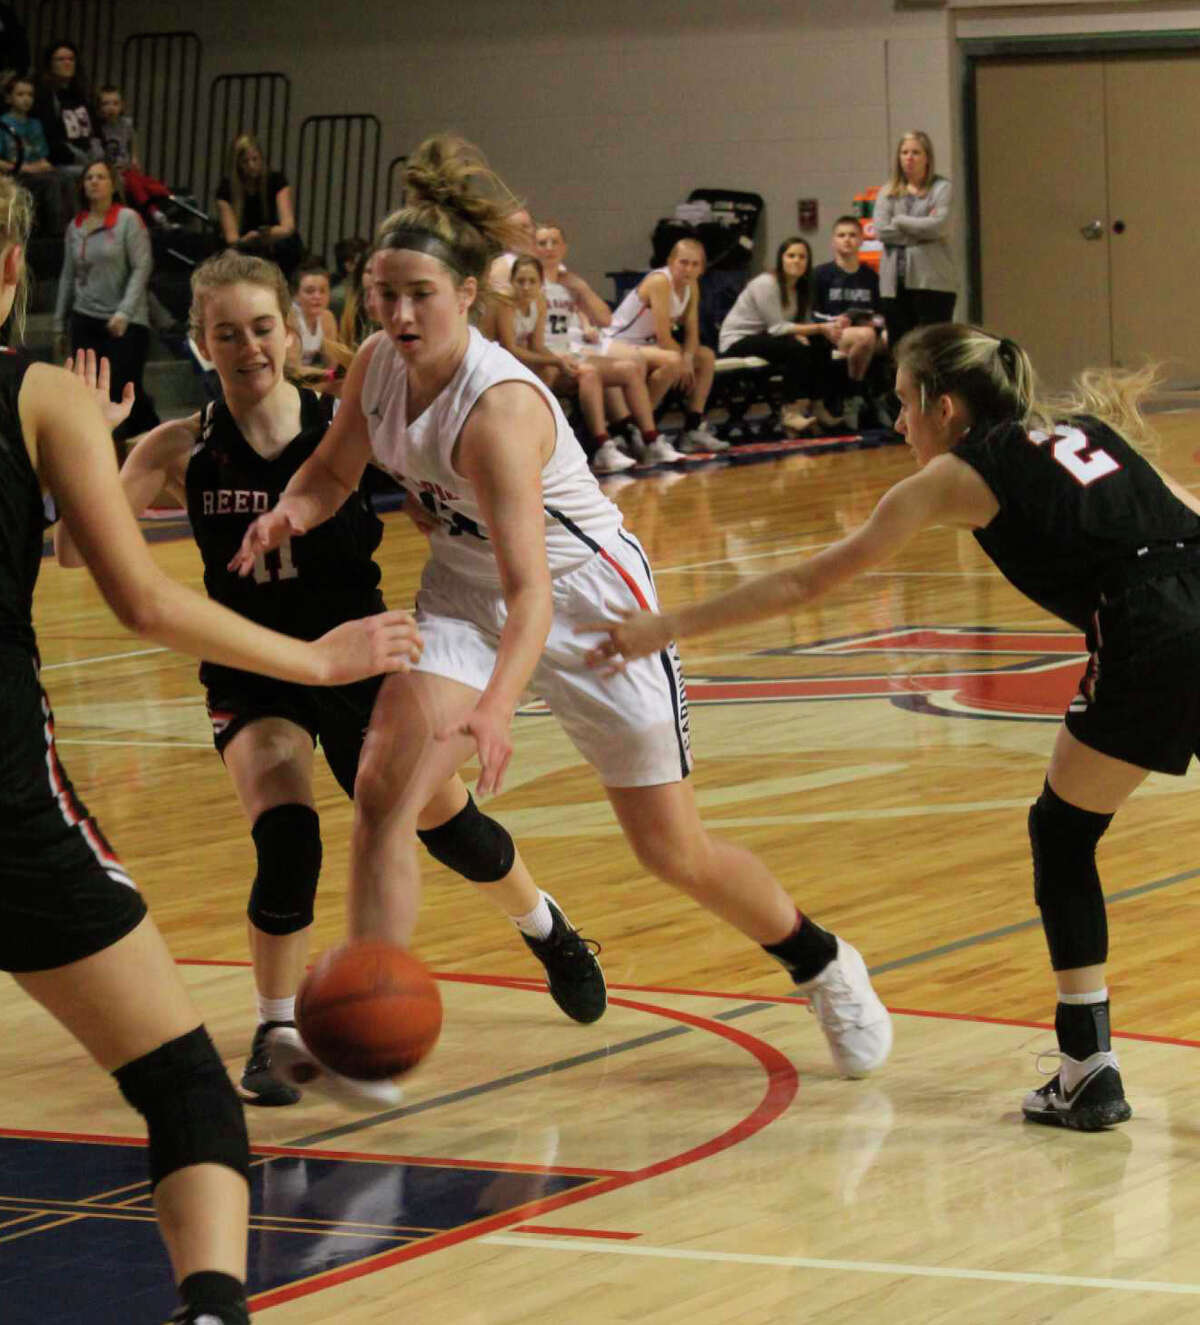 Reed City's Paige Lofquist (left) goes after the ball against Big Rapids on Friday in CSAA action.